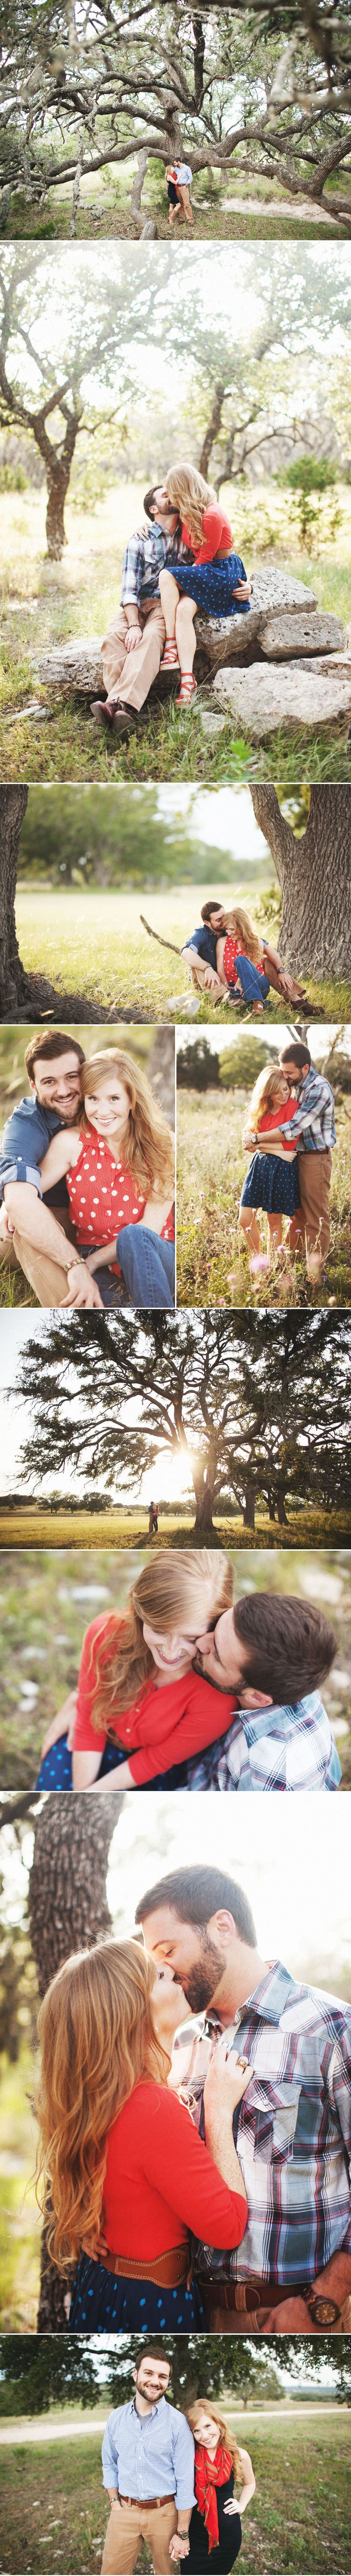 molly + tyler | austin engagements | austin wedding photographer | ee photography